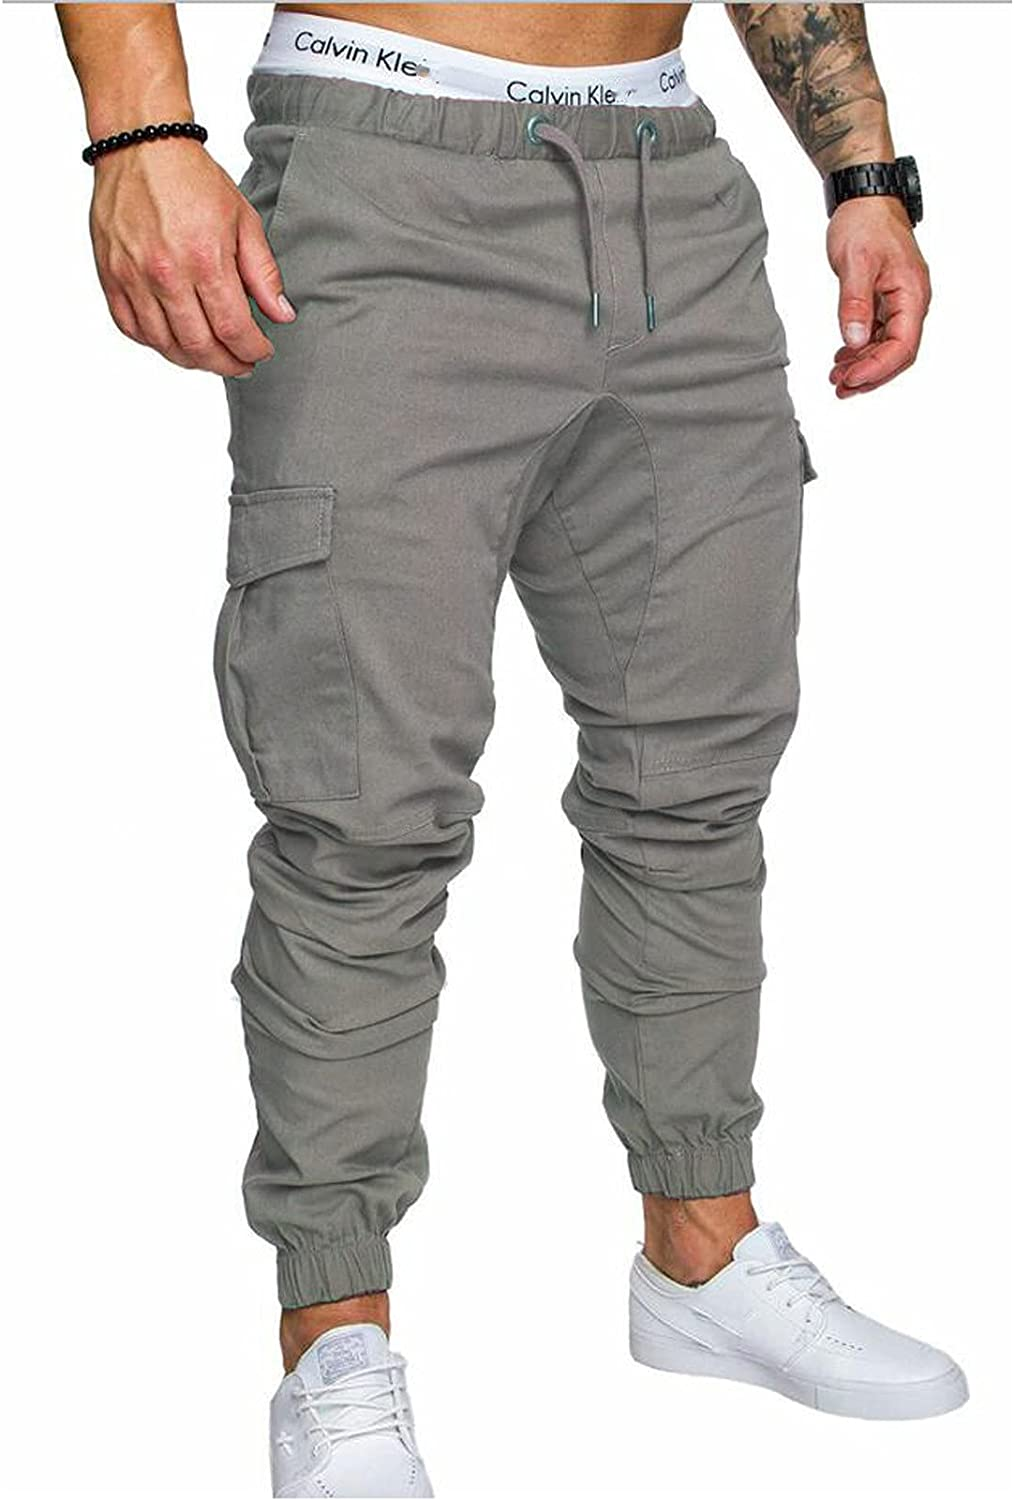 Easy-to-use raillery Men's Cotton Cargo Minneapolis Mall Pants Casual Fit Slim Jogger